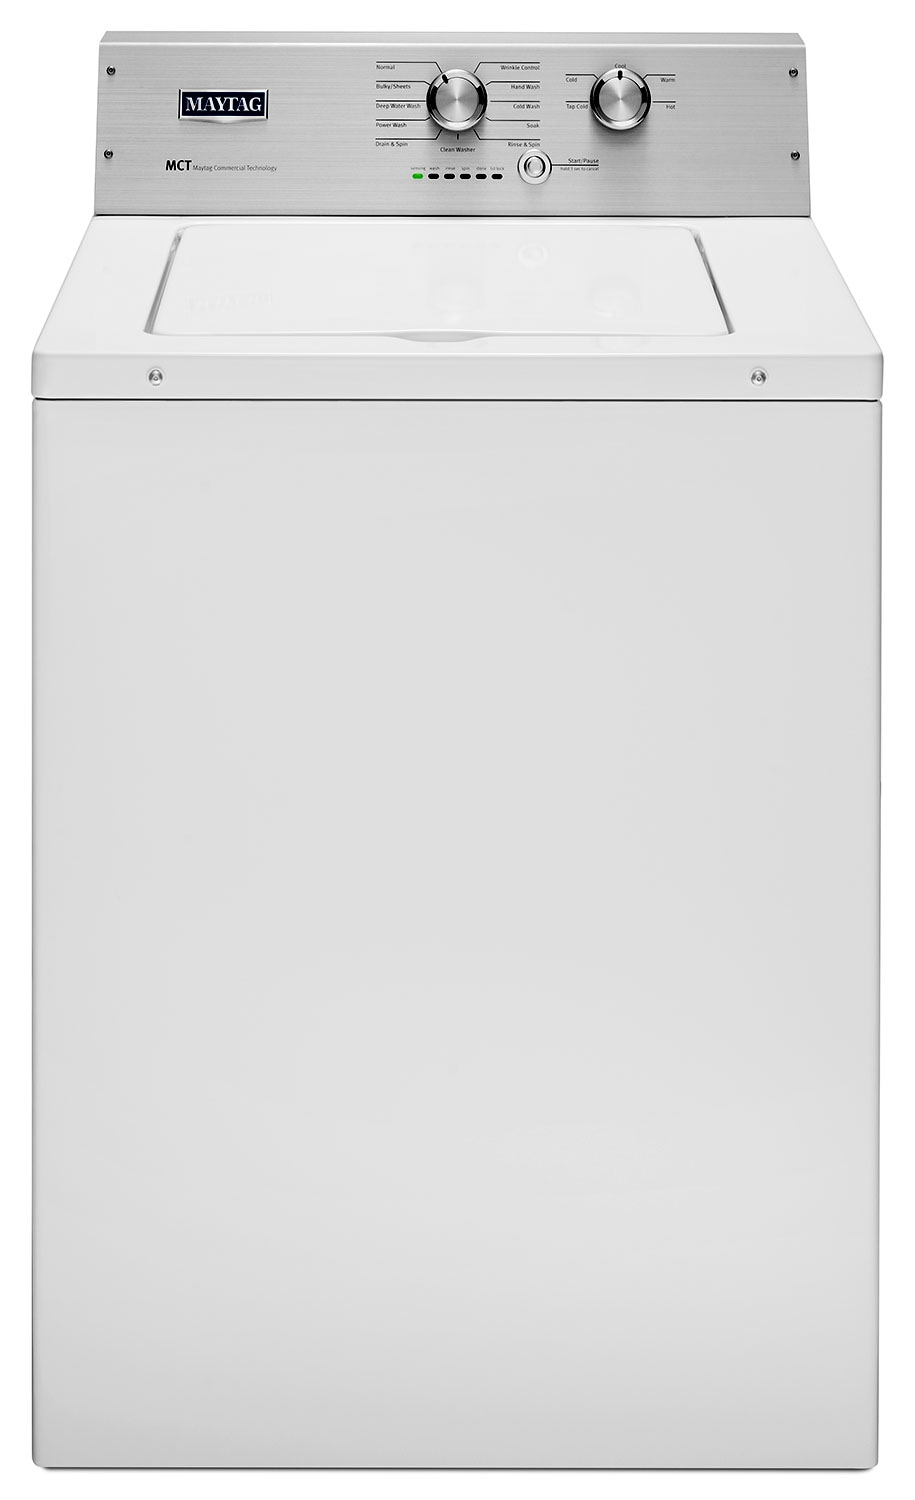 Maytag White Top-Load Washer (4.2 Cu. Ft.) - MVWP475EW